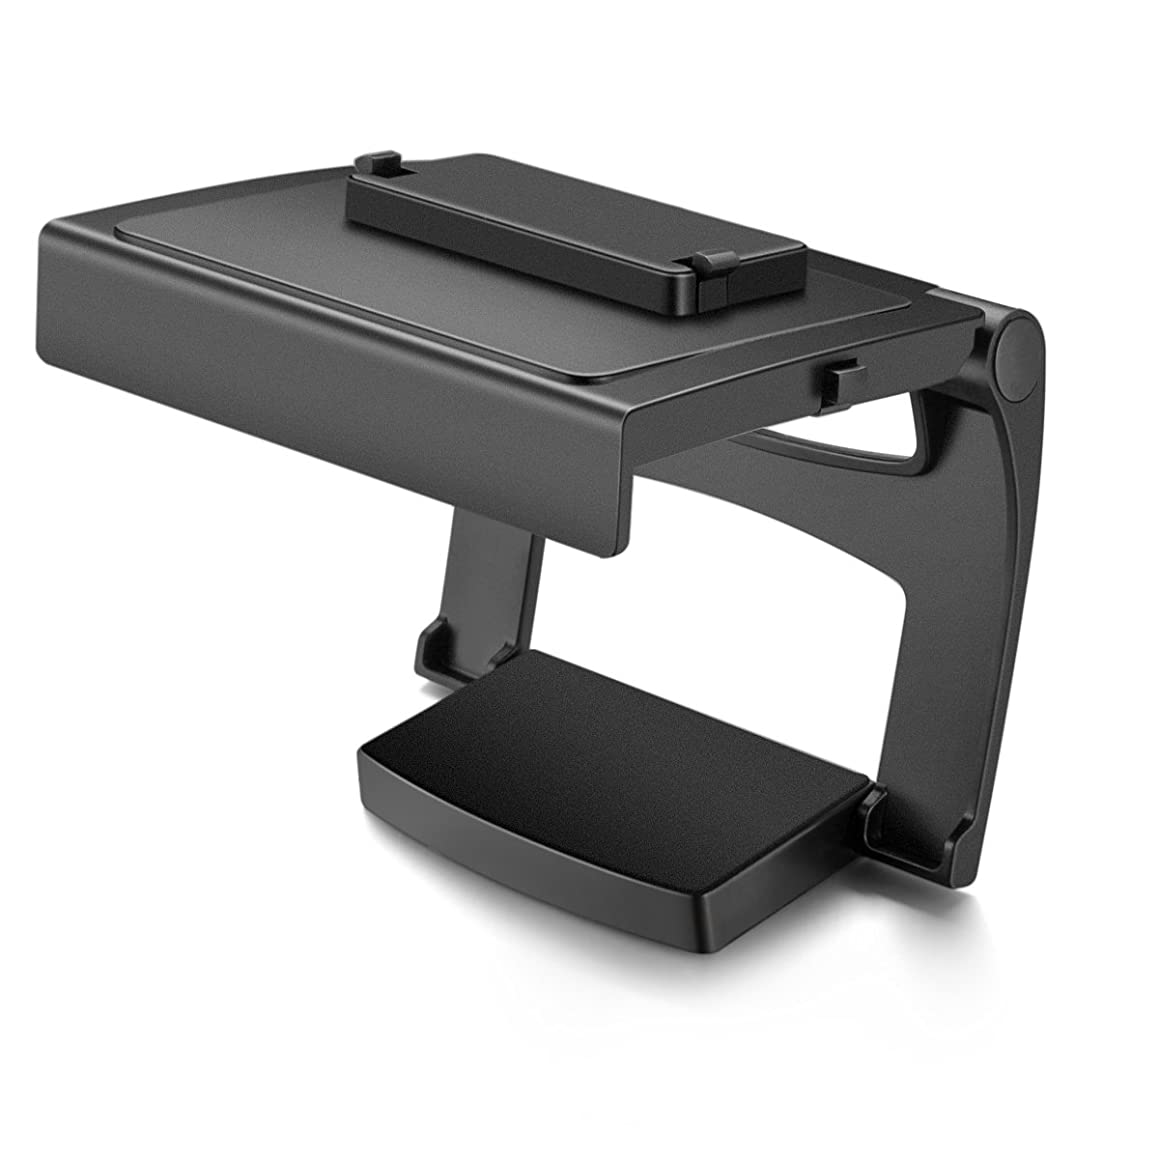 URWOOW Xbox One Kinect 2.0 Sensor Camera TV Mount Clip Adjustable Mounting Clamp Monitor Holder Dock Stand Bracket for Microsoft Xbox One